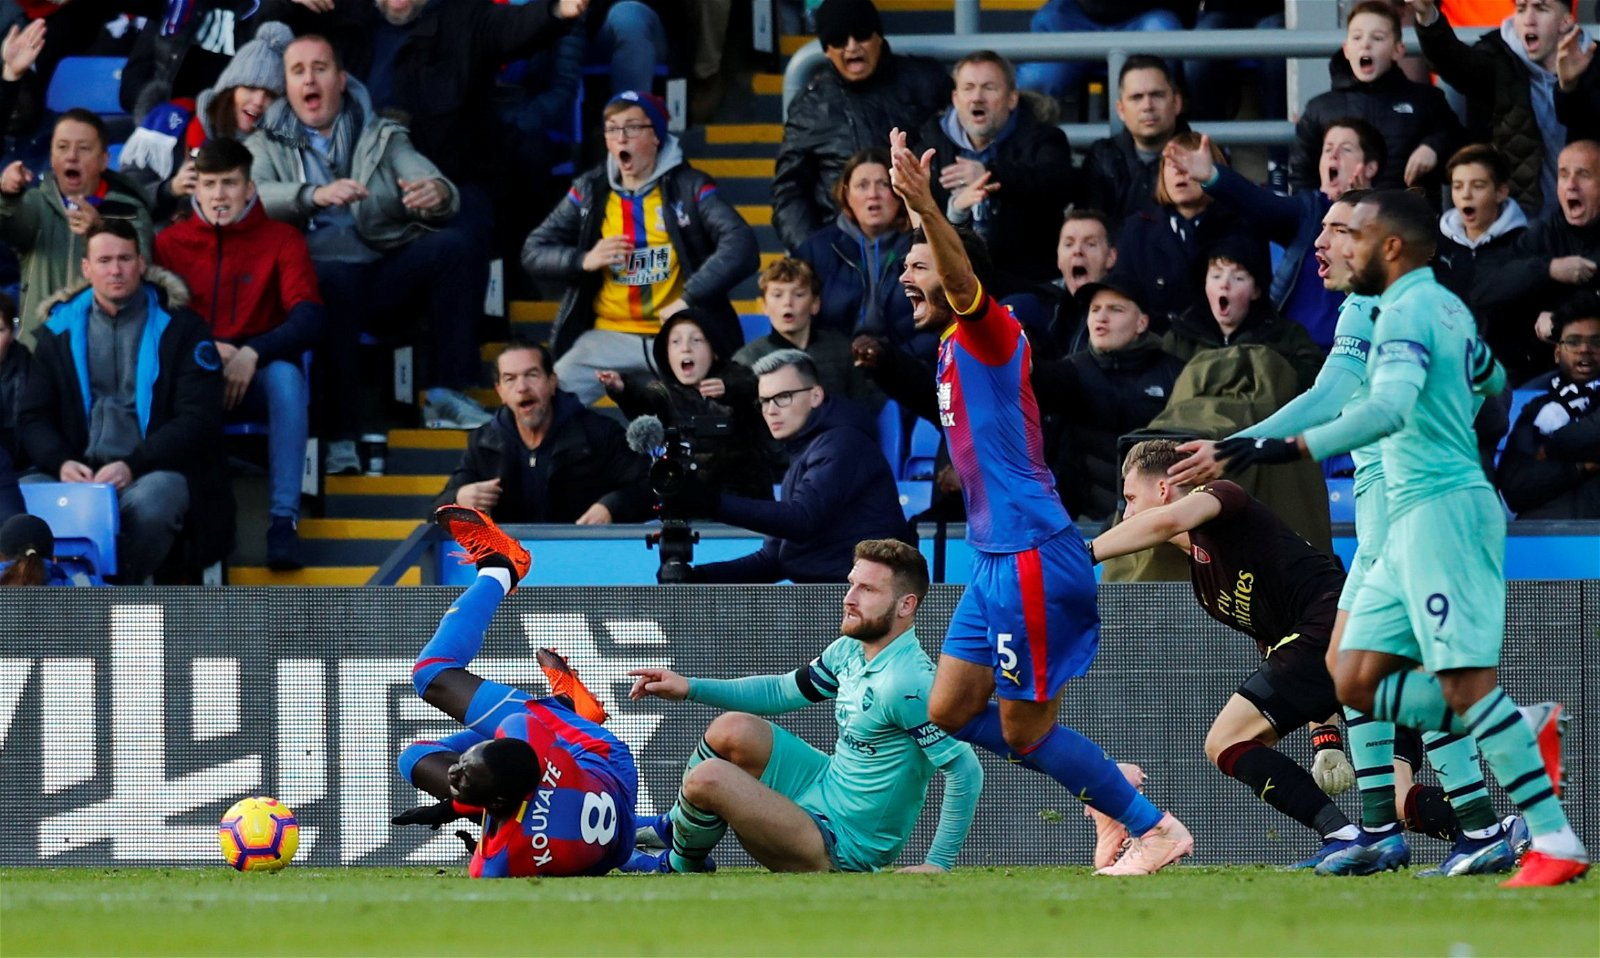 Crystal Palace awarded a penalty after Crystal Palace's Cheikhou Kouyate brought down by Arsenal's Shkodran Mustafi